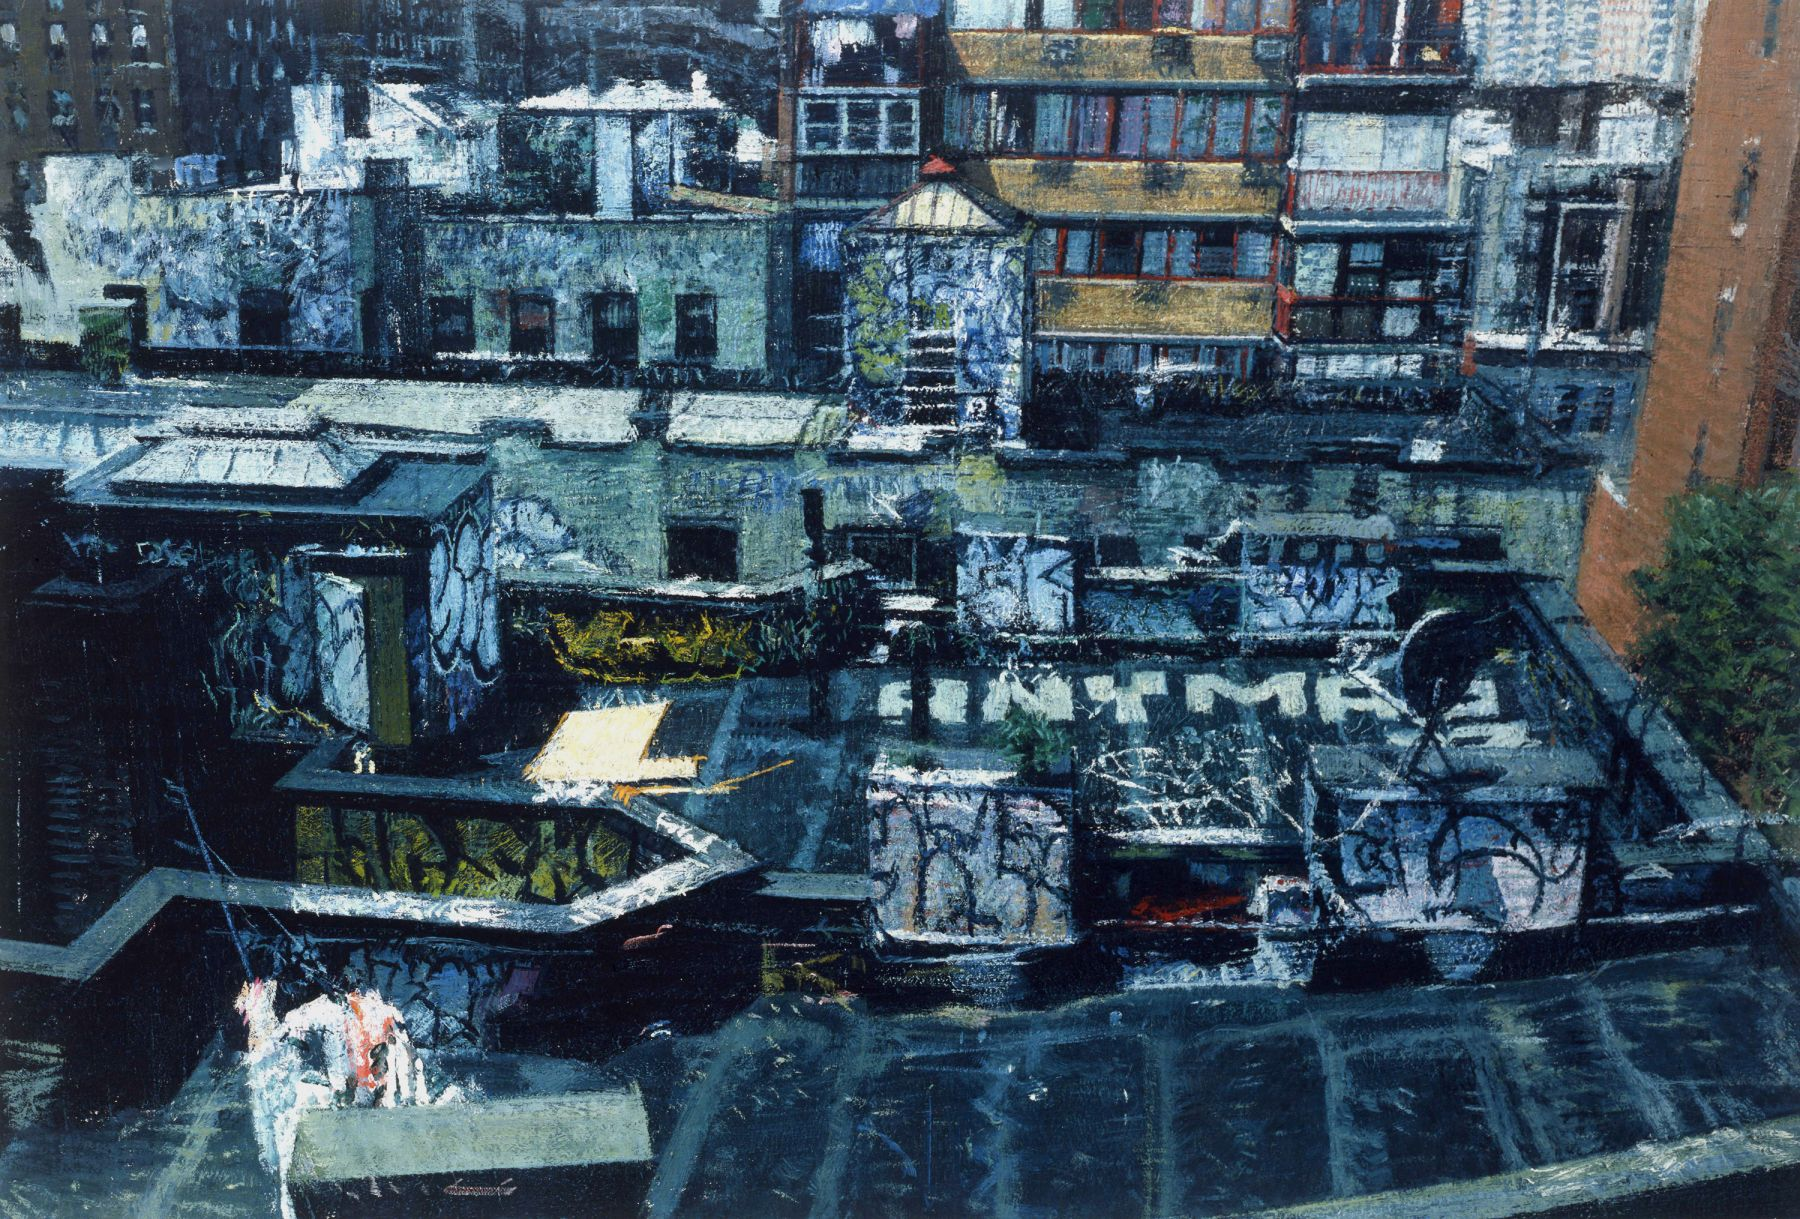 Bernardo Siciliano, Chinatown (SOLD), 2009, oil on canvas, 21 1/4 x 31 1/2 inches